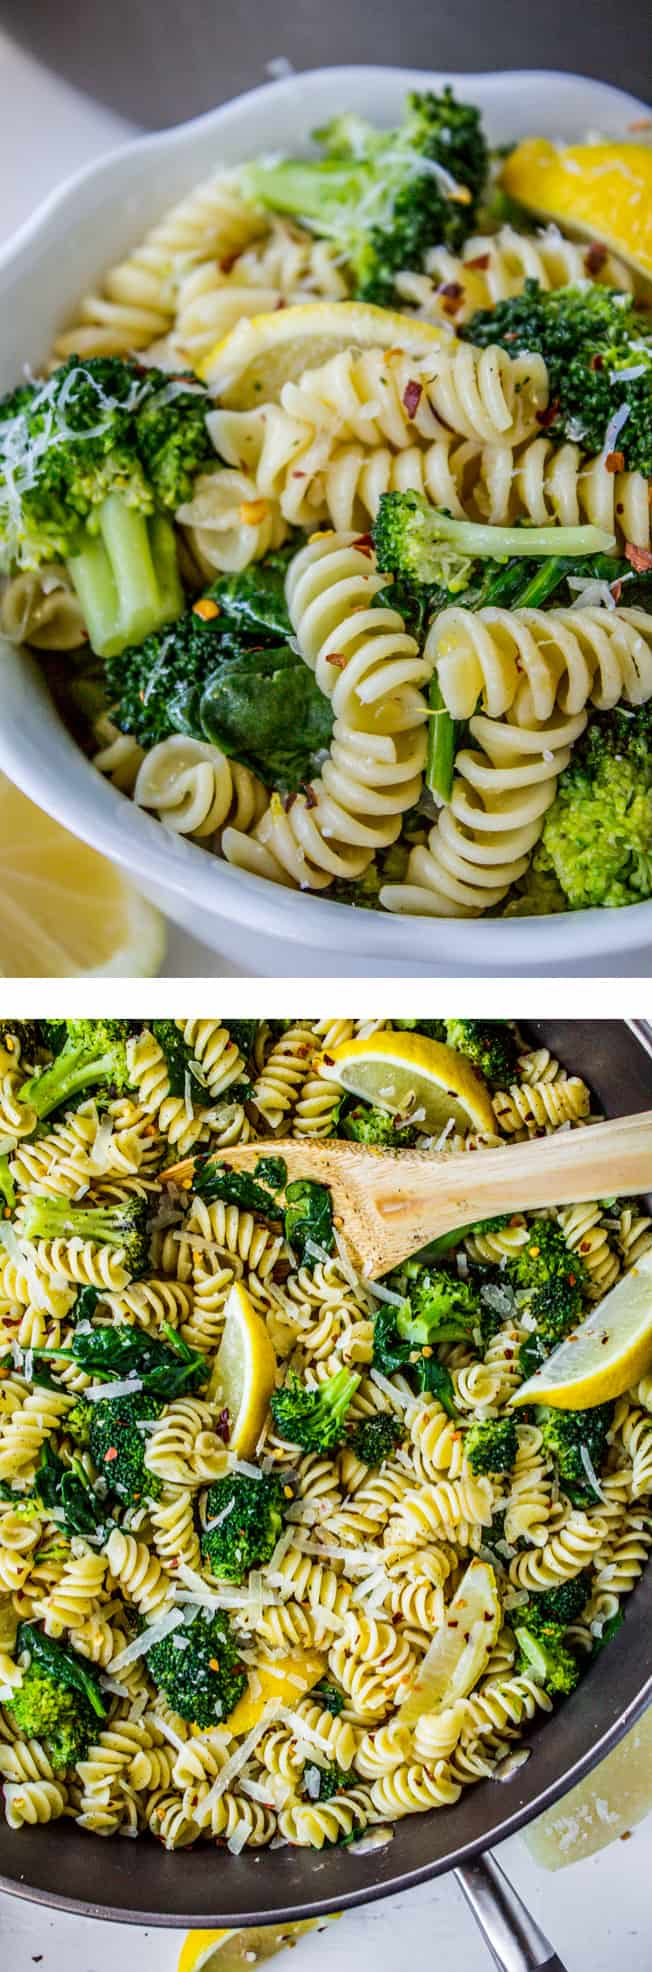 20 minute lemon broccoli pasta skillet the food charlatan